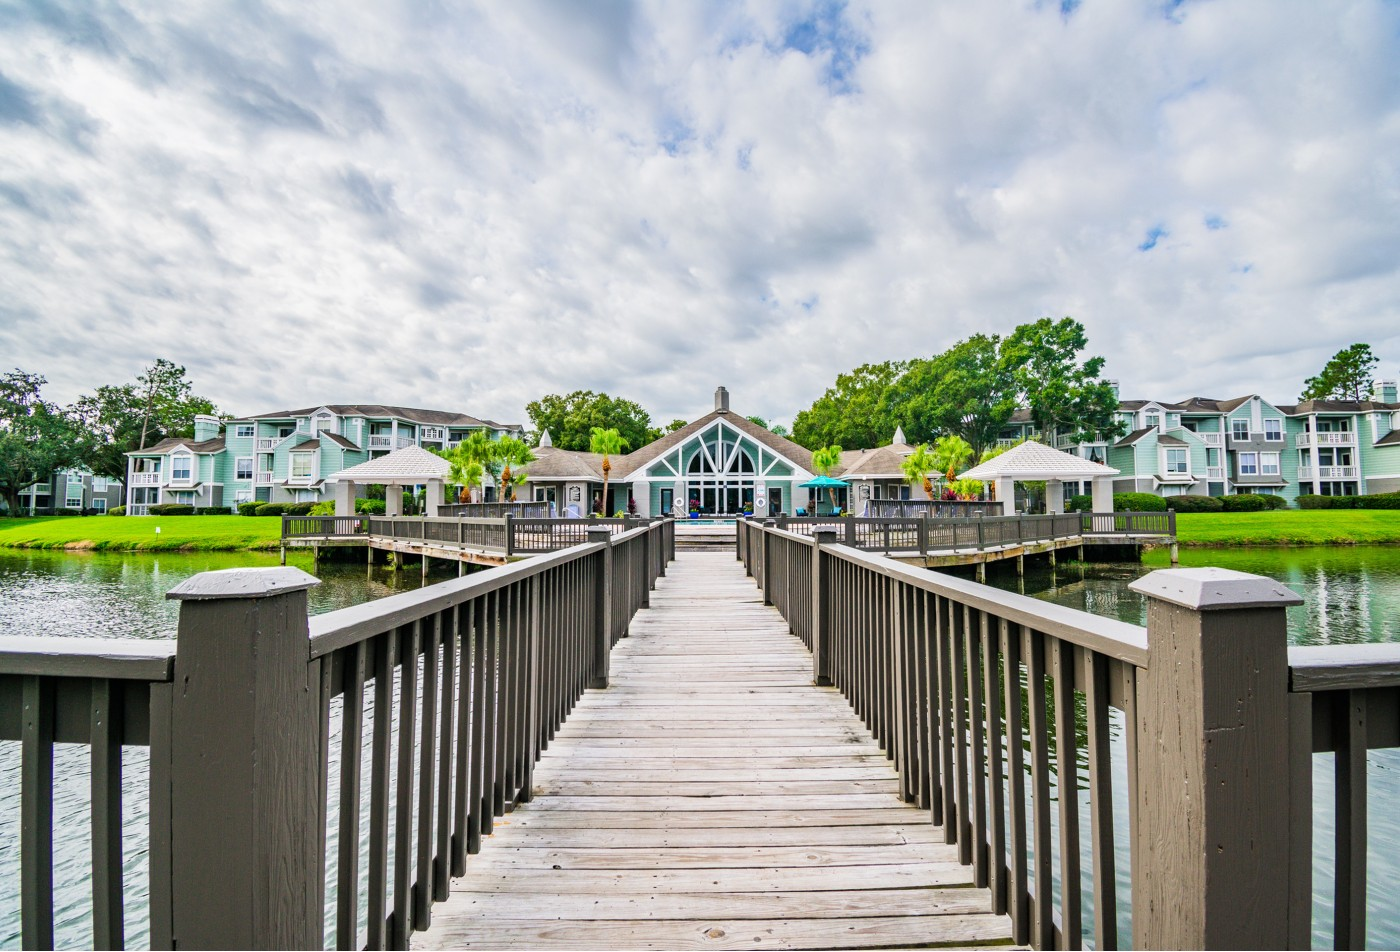 View of leasing office/club room and apartment building exterior from dock over lake